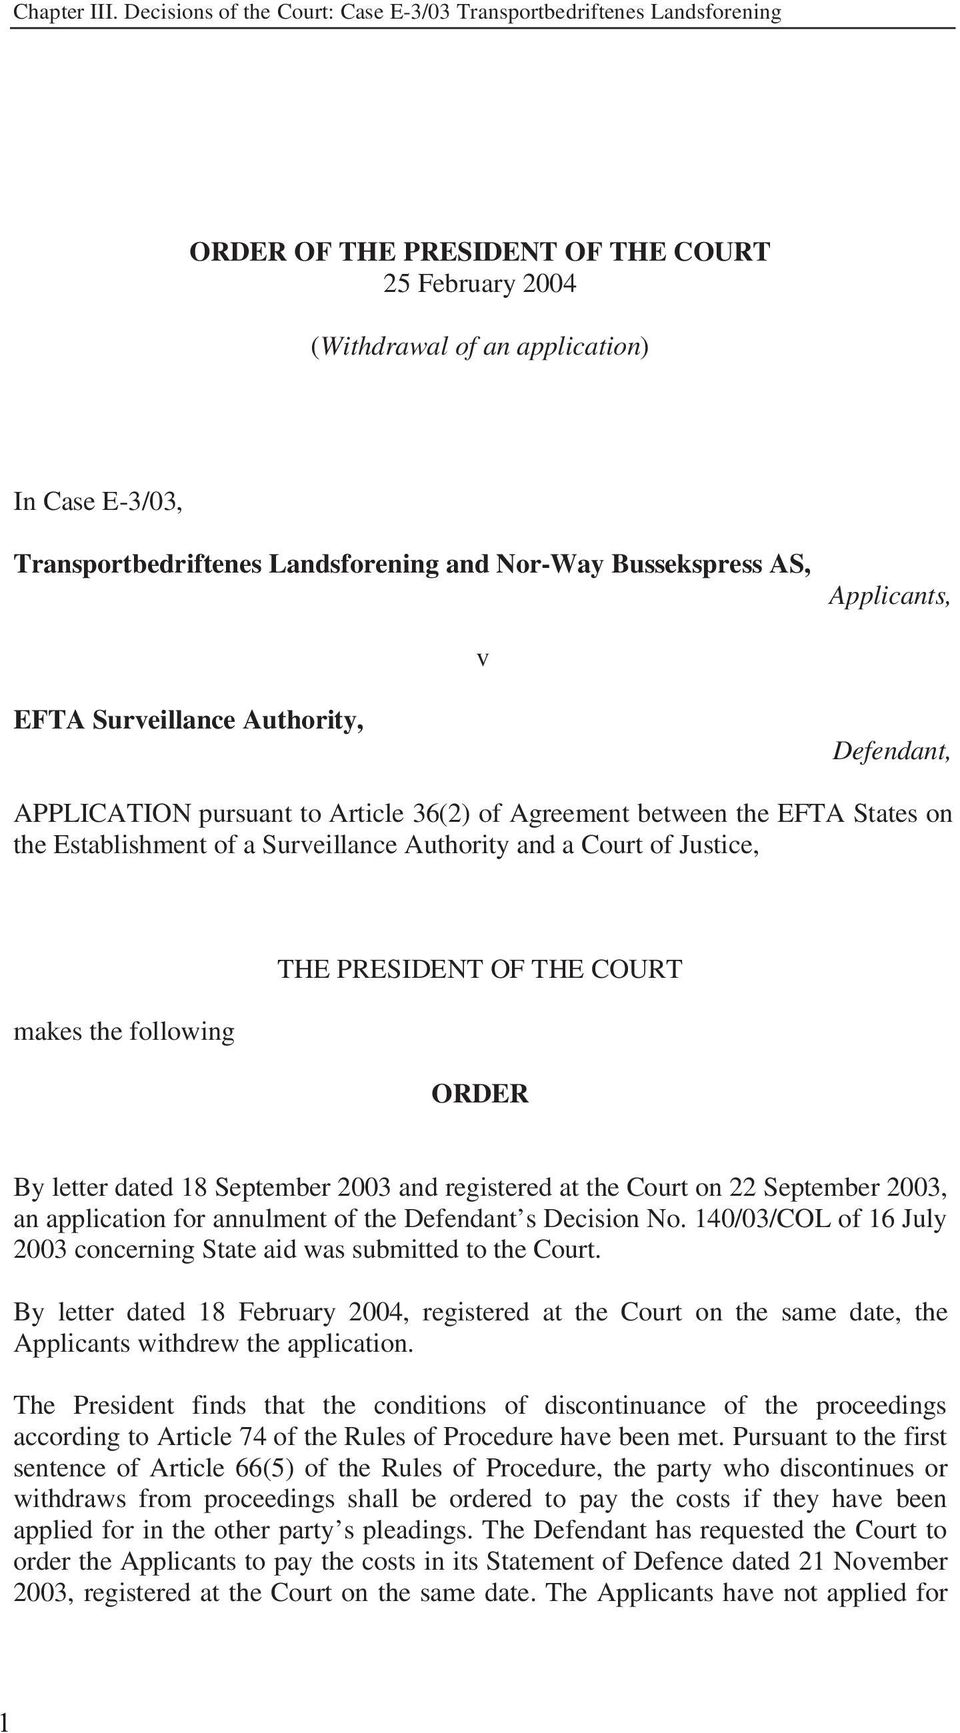 Landsforening and Nor-Way Bussekspress AS, Applicants, v EFTA Surveillance Authority, Defendant, APPLICATION pursuant to Article 36(2) of Agreement between the EFTA States on the Establishment of a